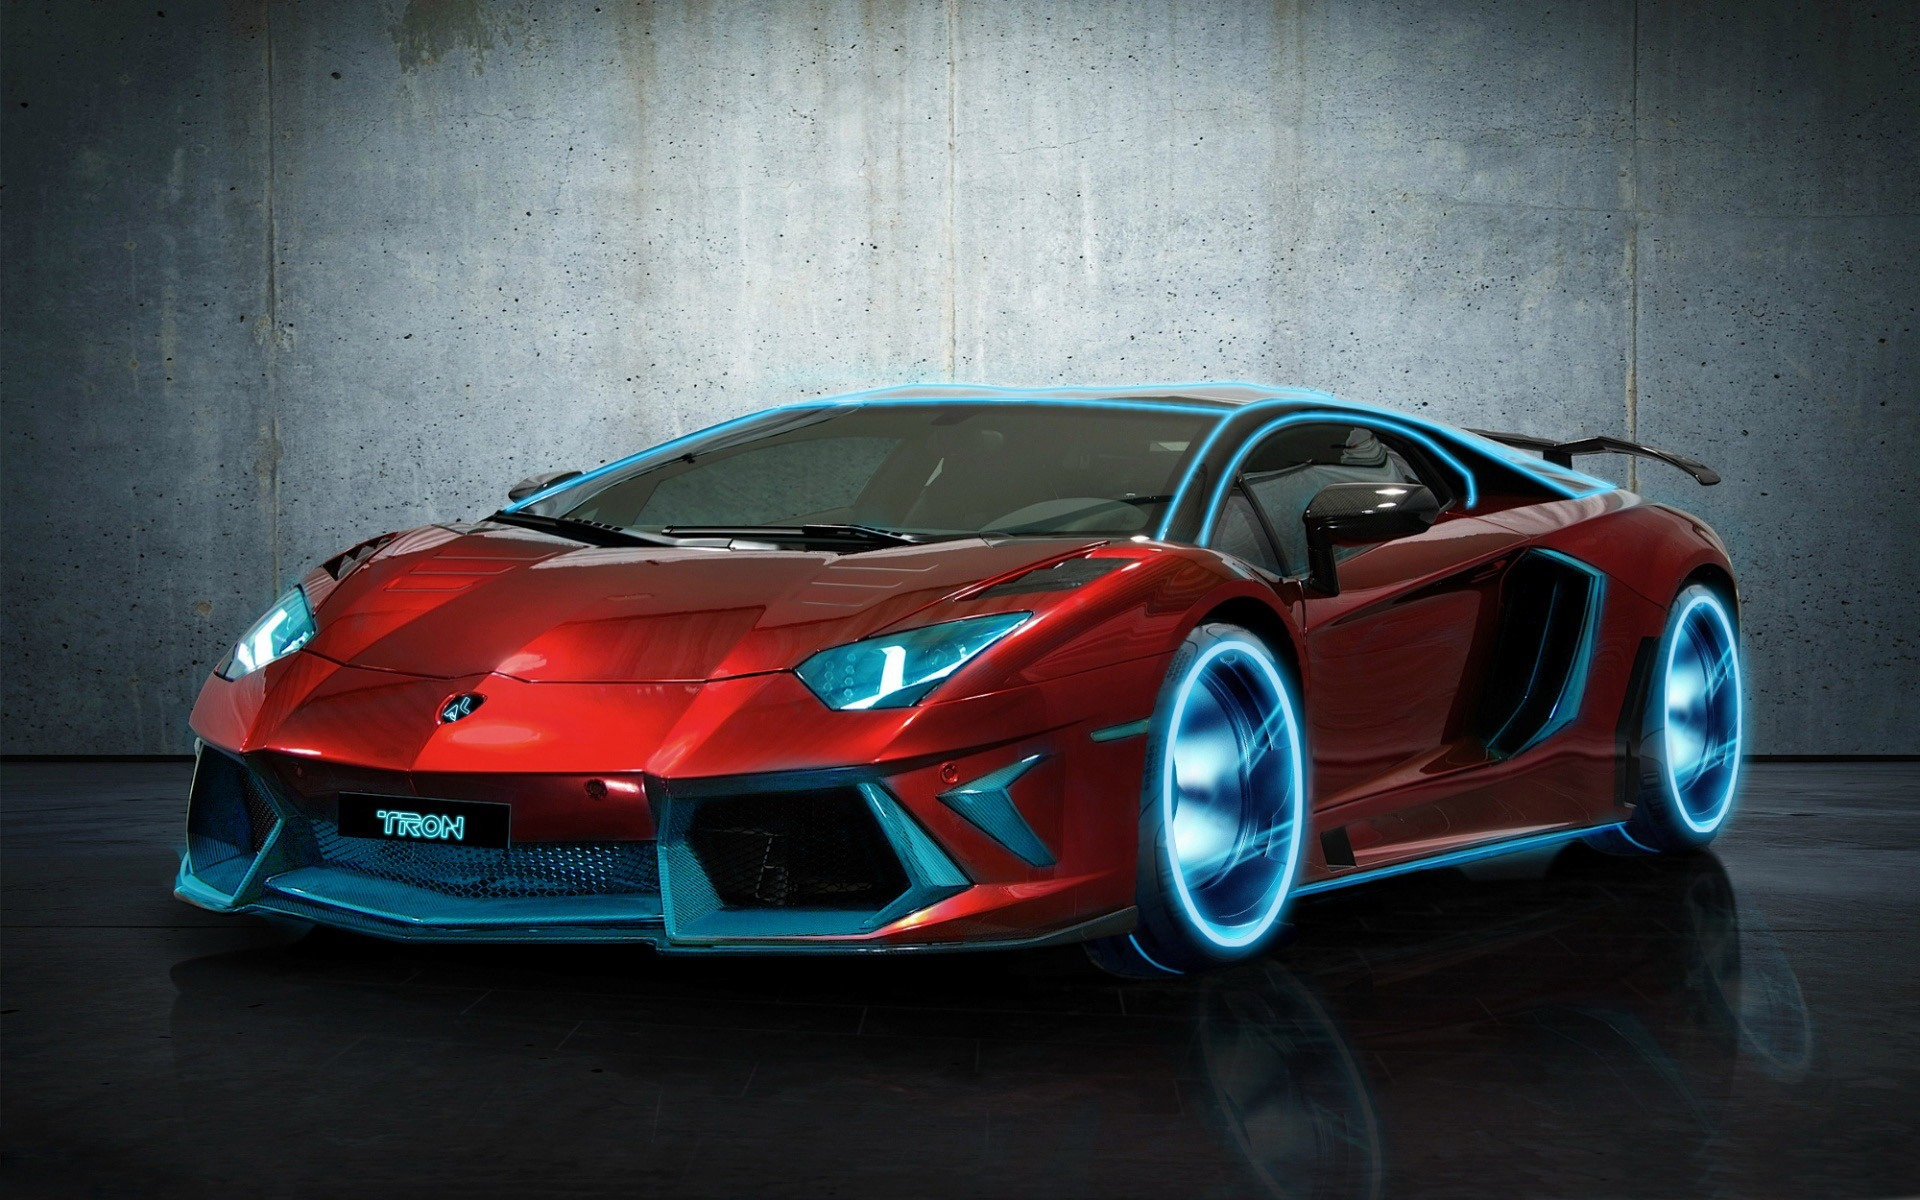 Cool Car Images Mobile Hd 5 Thumb